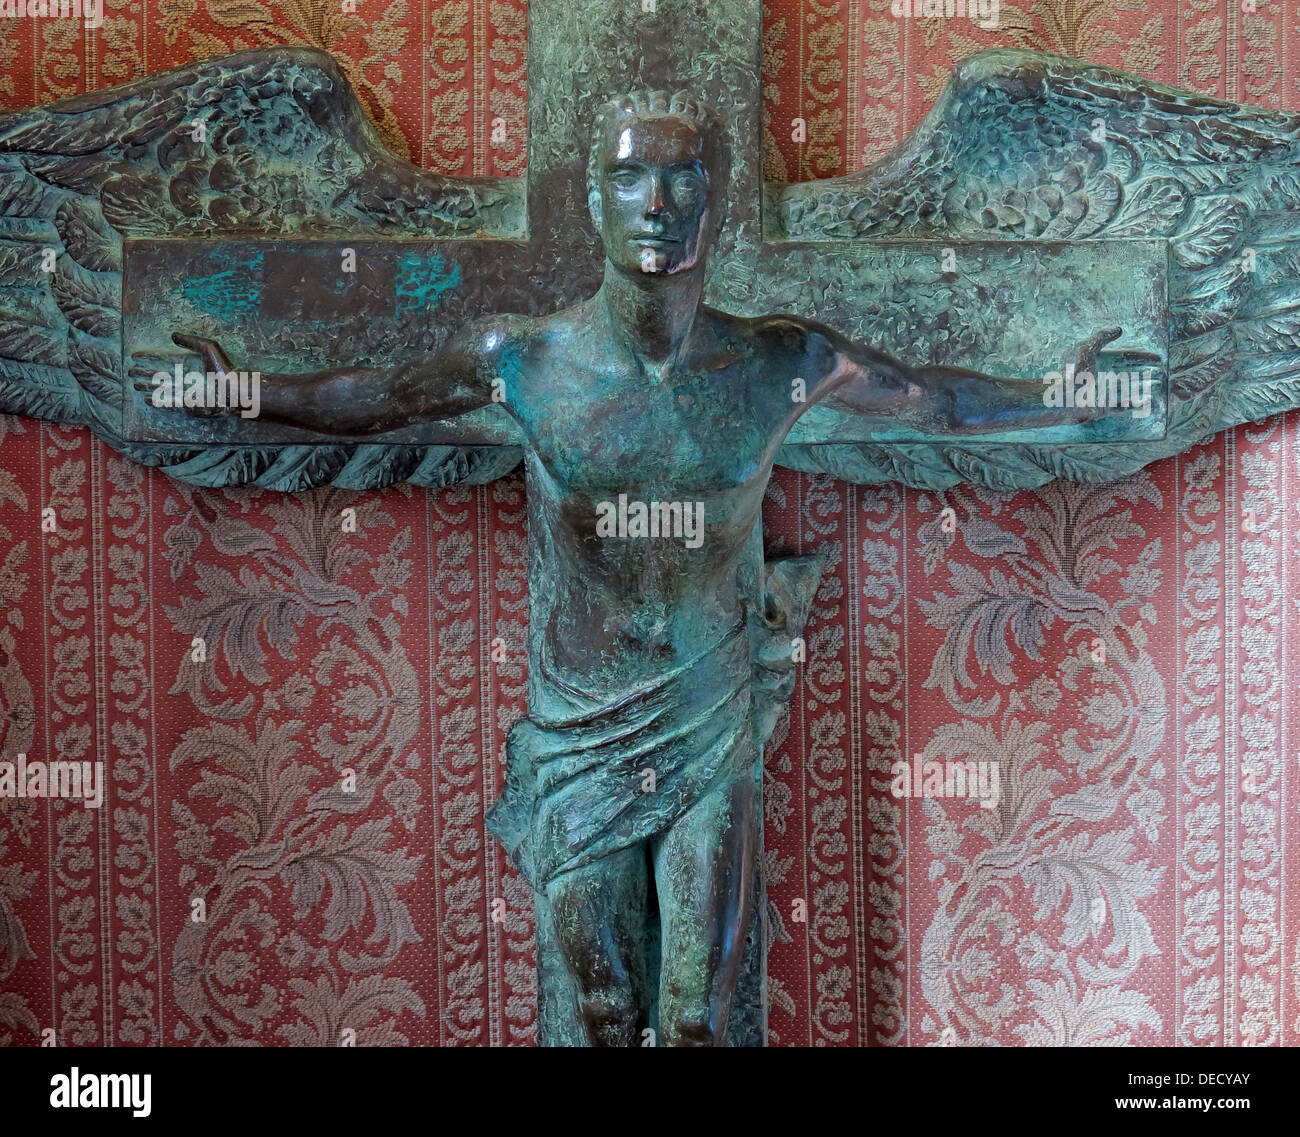 Bronze Crucifix Art inside the Canongate Kirk, Edinburgh Old Town,153 Canongate, Edinburgh, Midlothian EH8 8BN - Stock Image